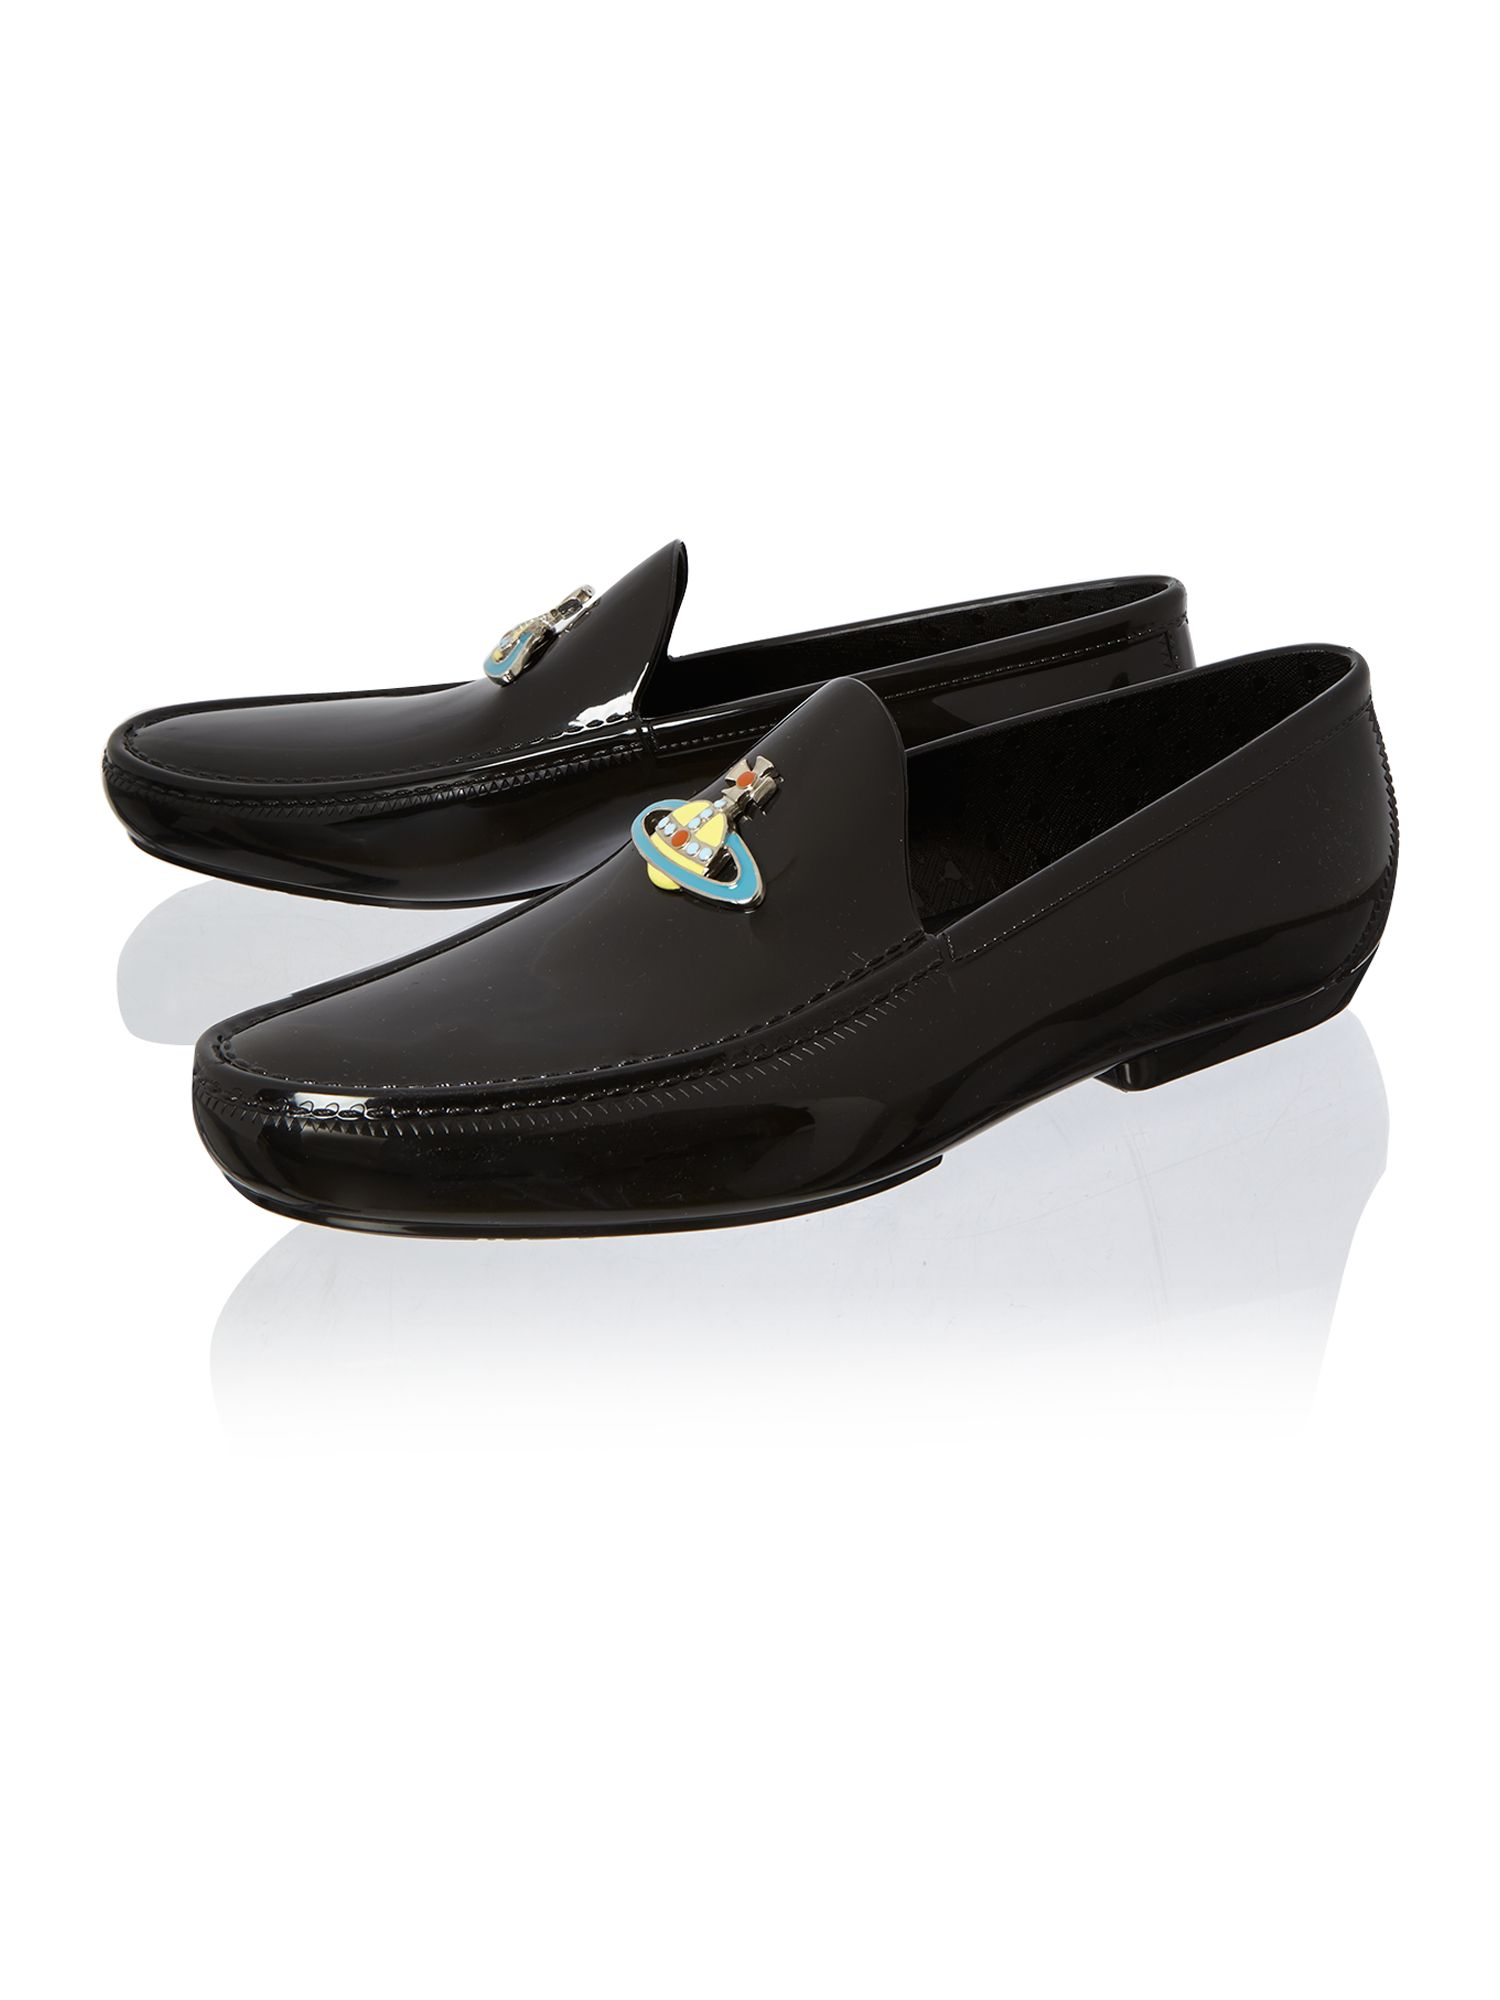 Orb moccasin shoe